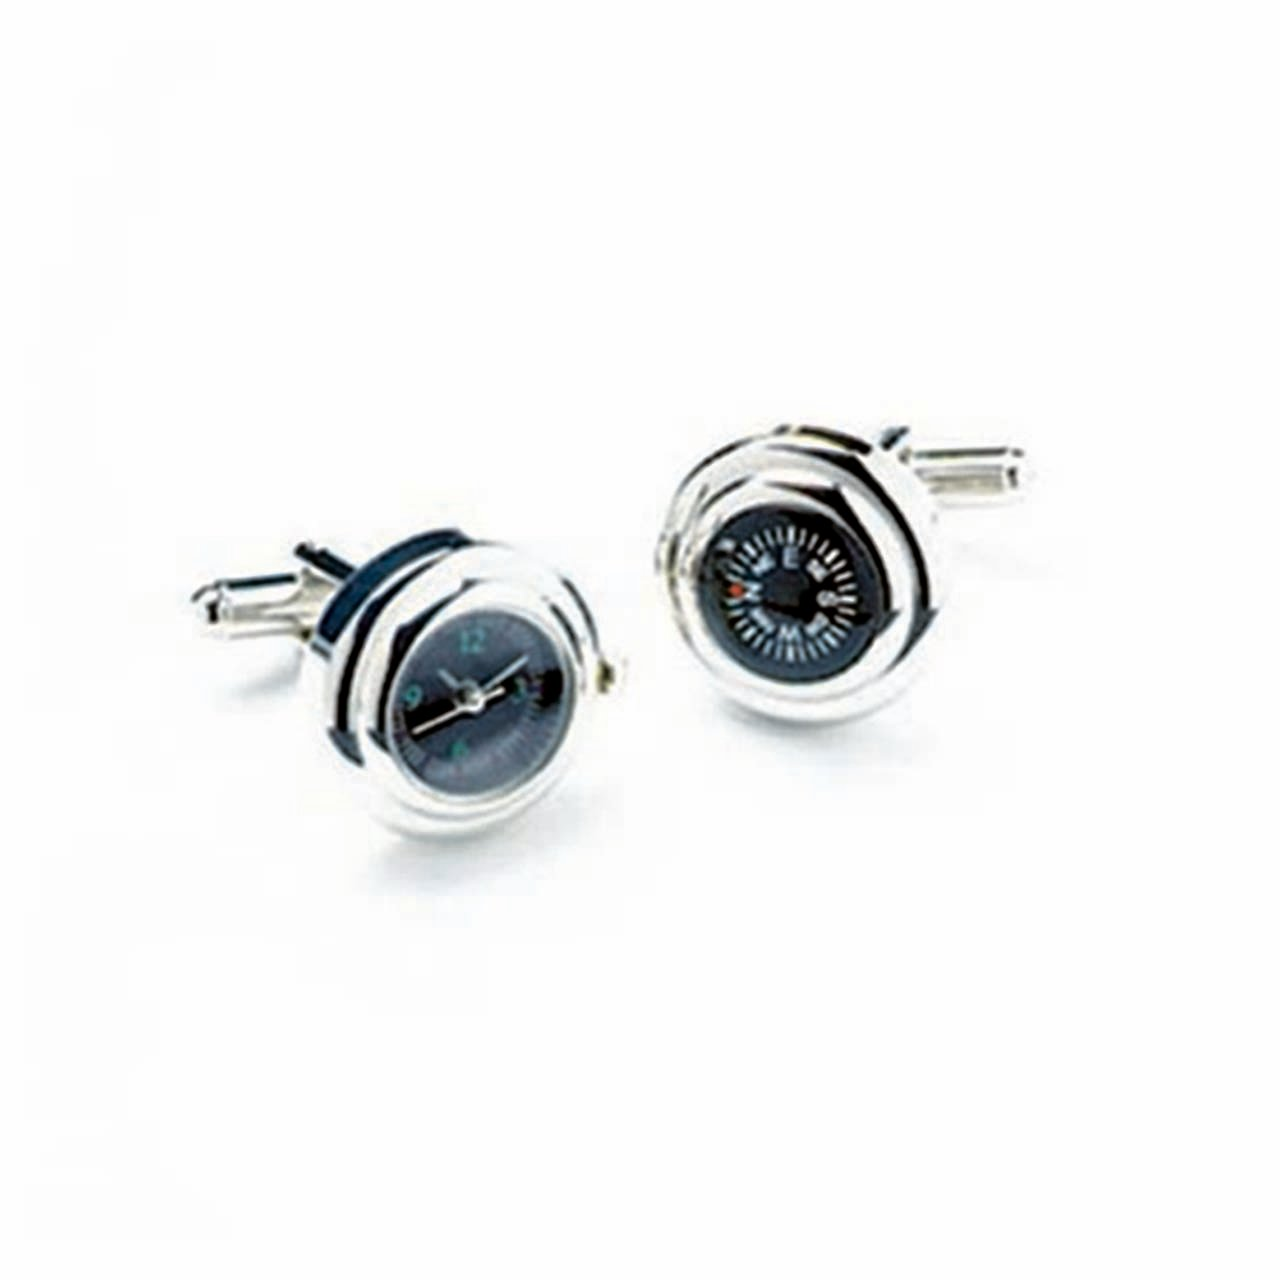 Rhodium Watch And Compass Cufflinks